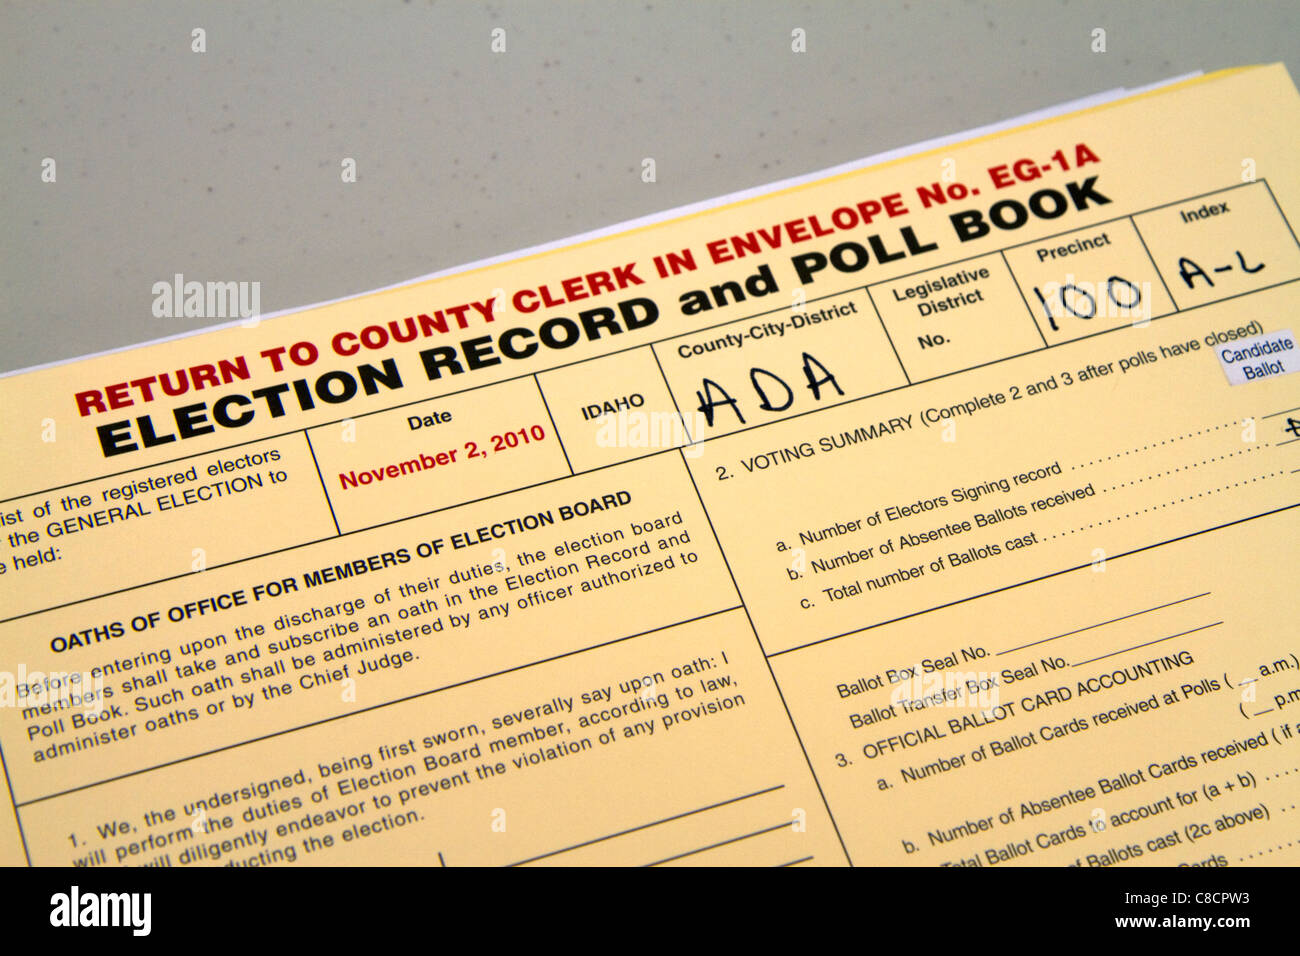 Election Record and Poll Book at a polling place in Boise, Idaho, USA. - Stock Image